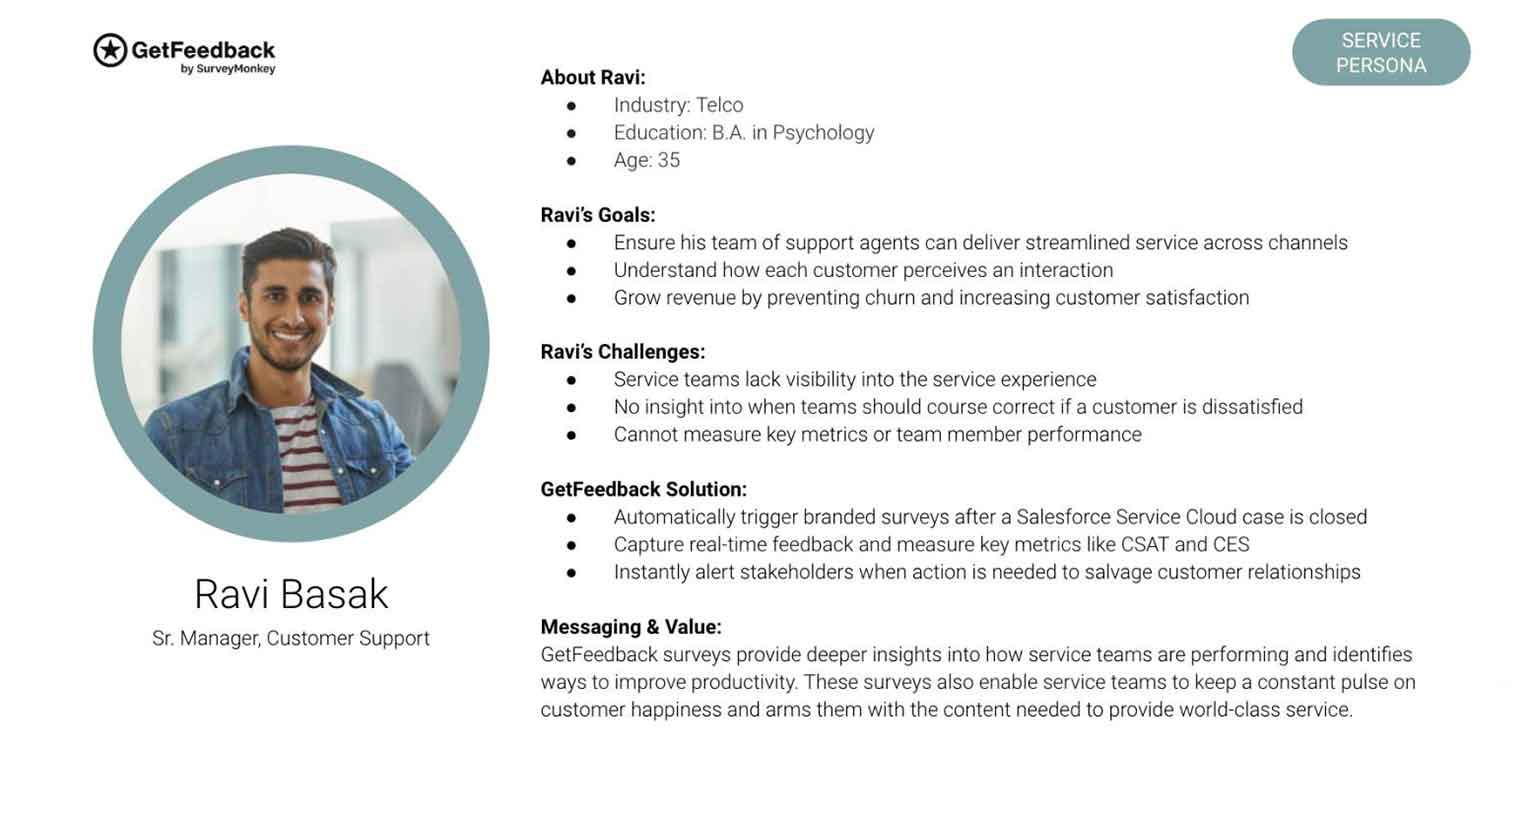 This business-to-business customer profile example is from GetFeedback by Survey Monkey.